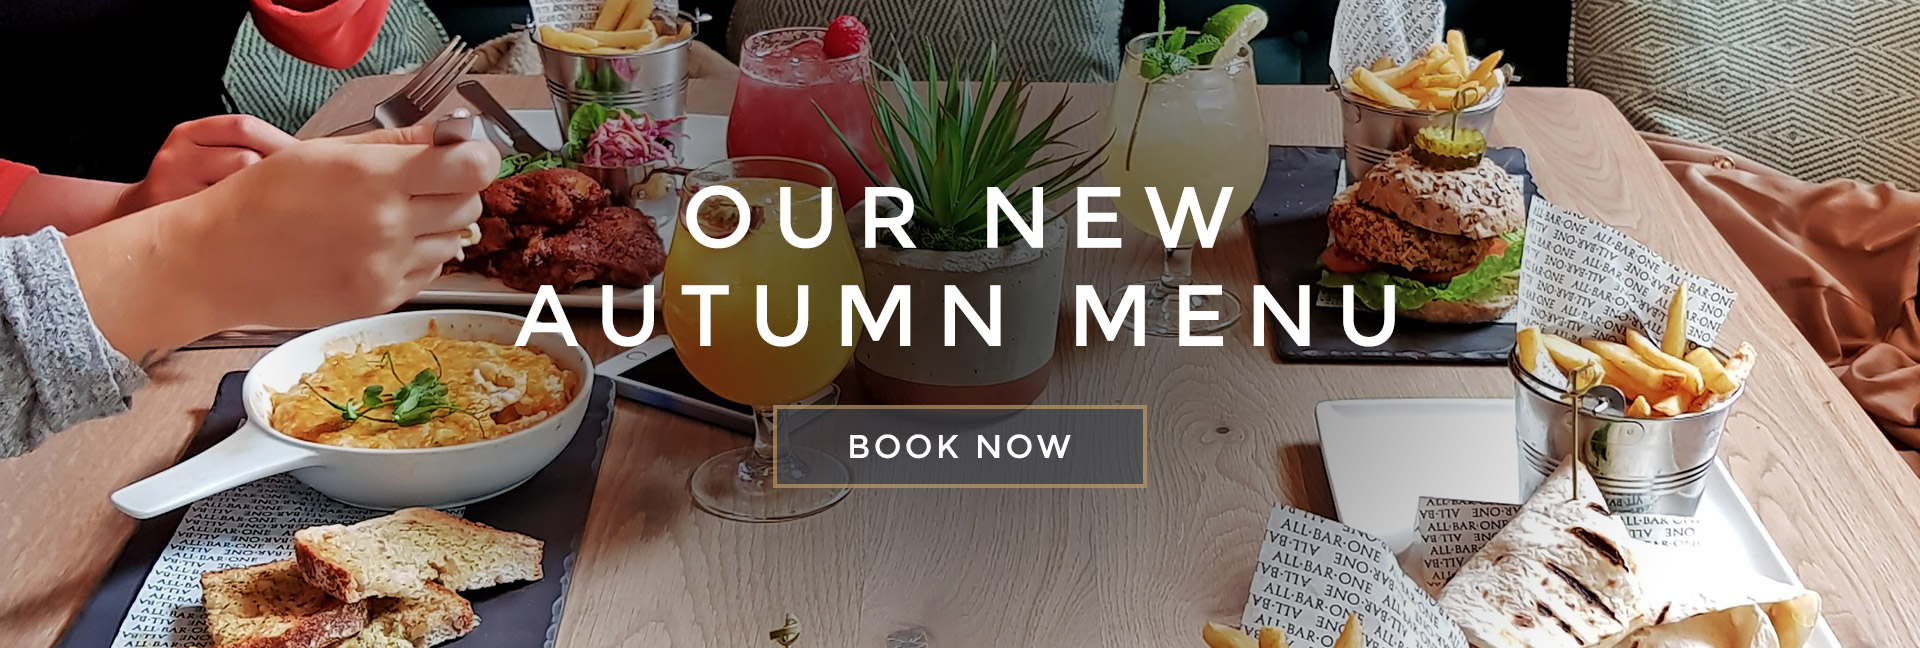 Our new Autumn menu at All Bar One Byward Street - Book now